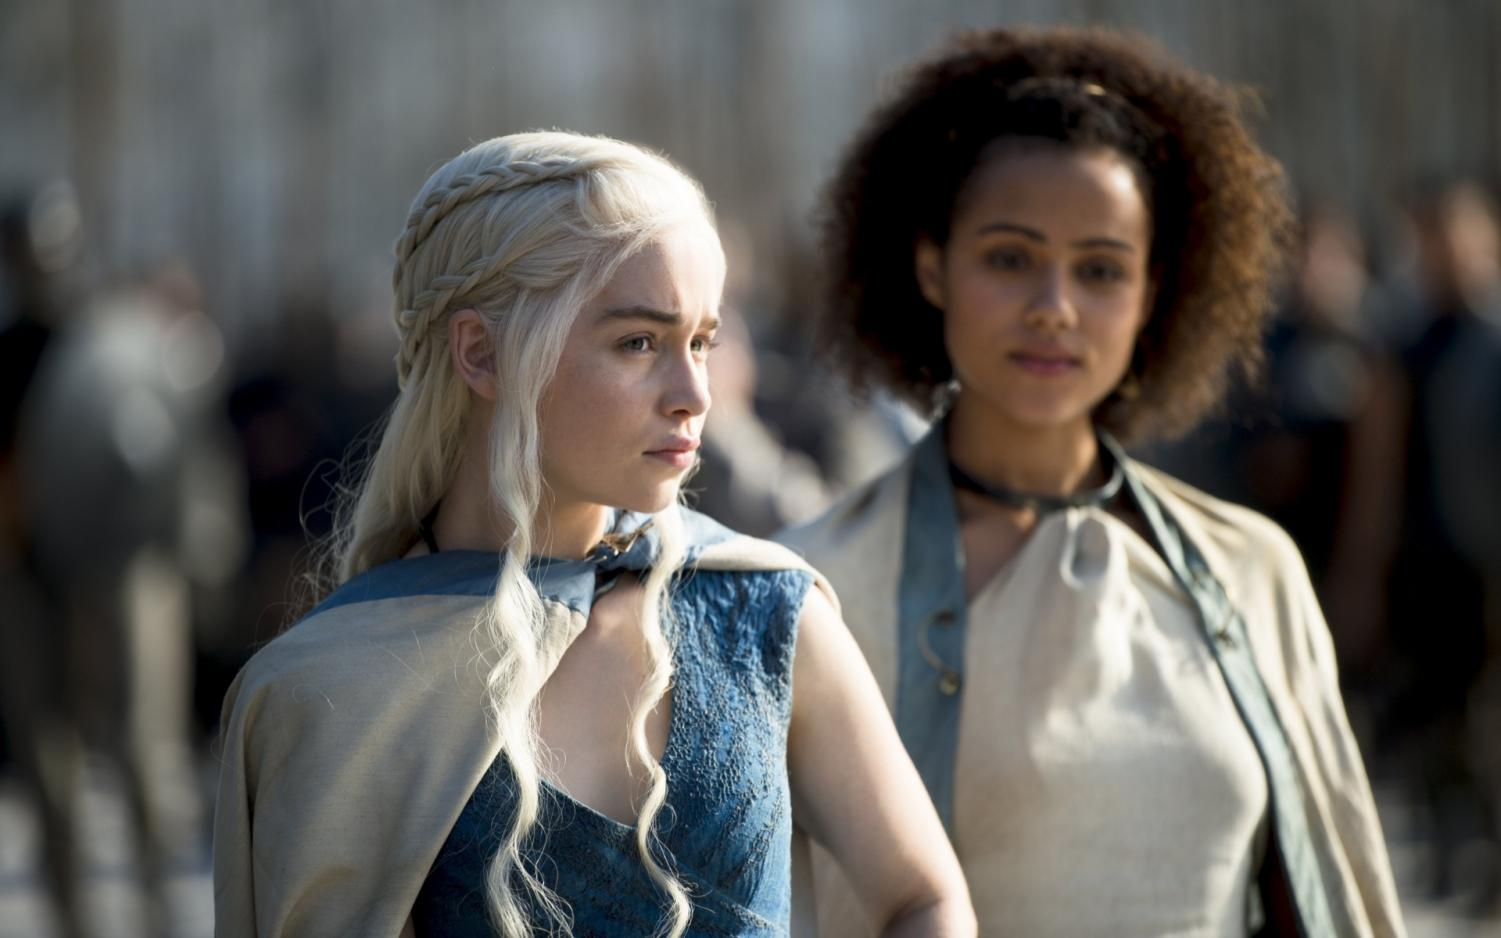 Emilia Clarke and Nathalie Emmanuel will headline Comicpalooza, appearing on May 11 and 12.